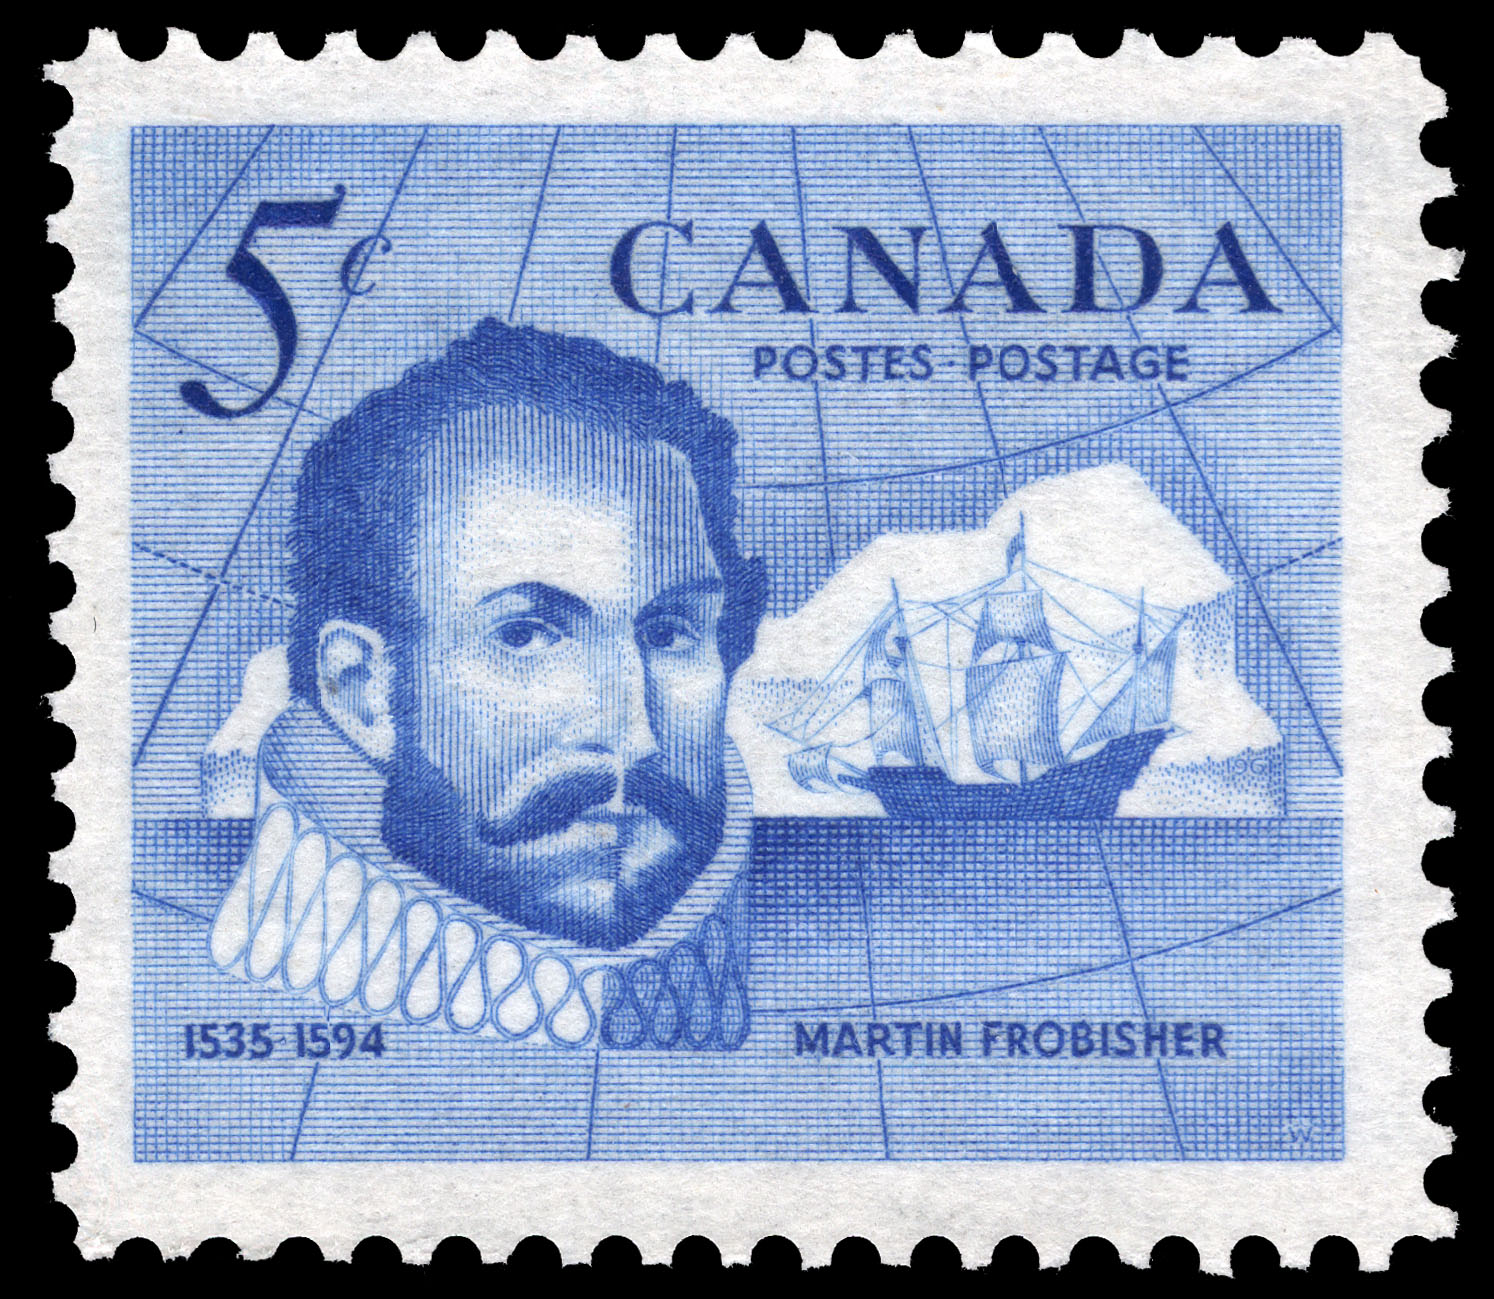 Martin Frobisher, 1535-1594 Canada Postage Stamp